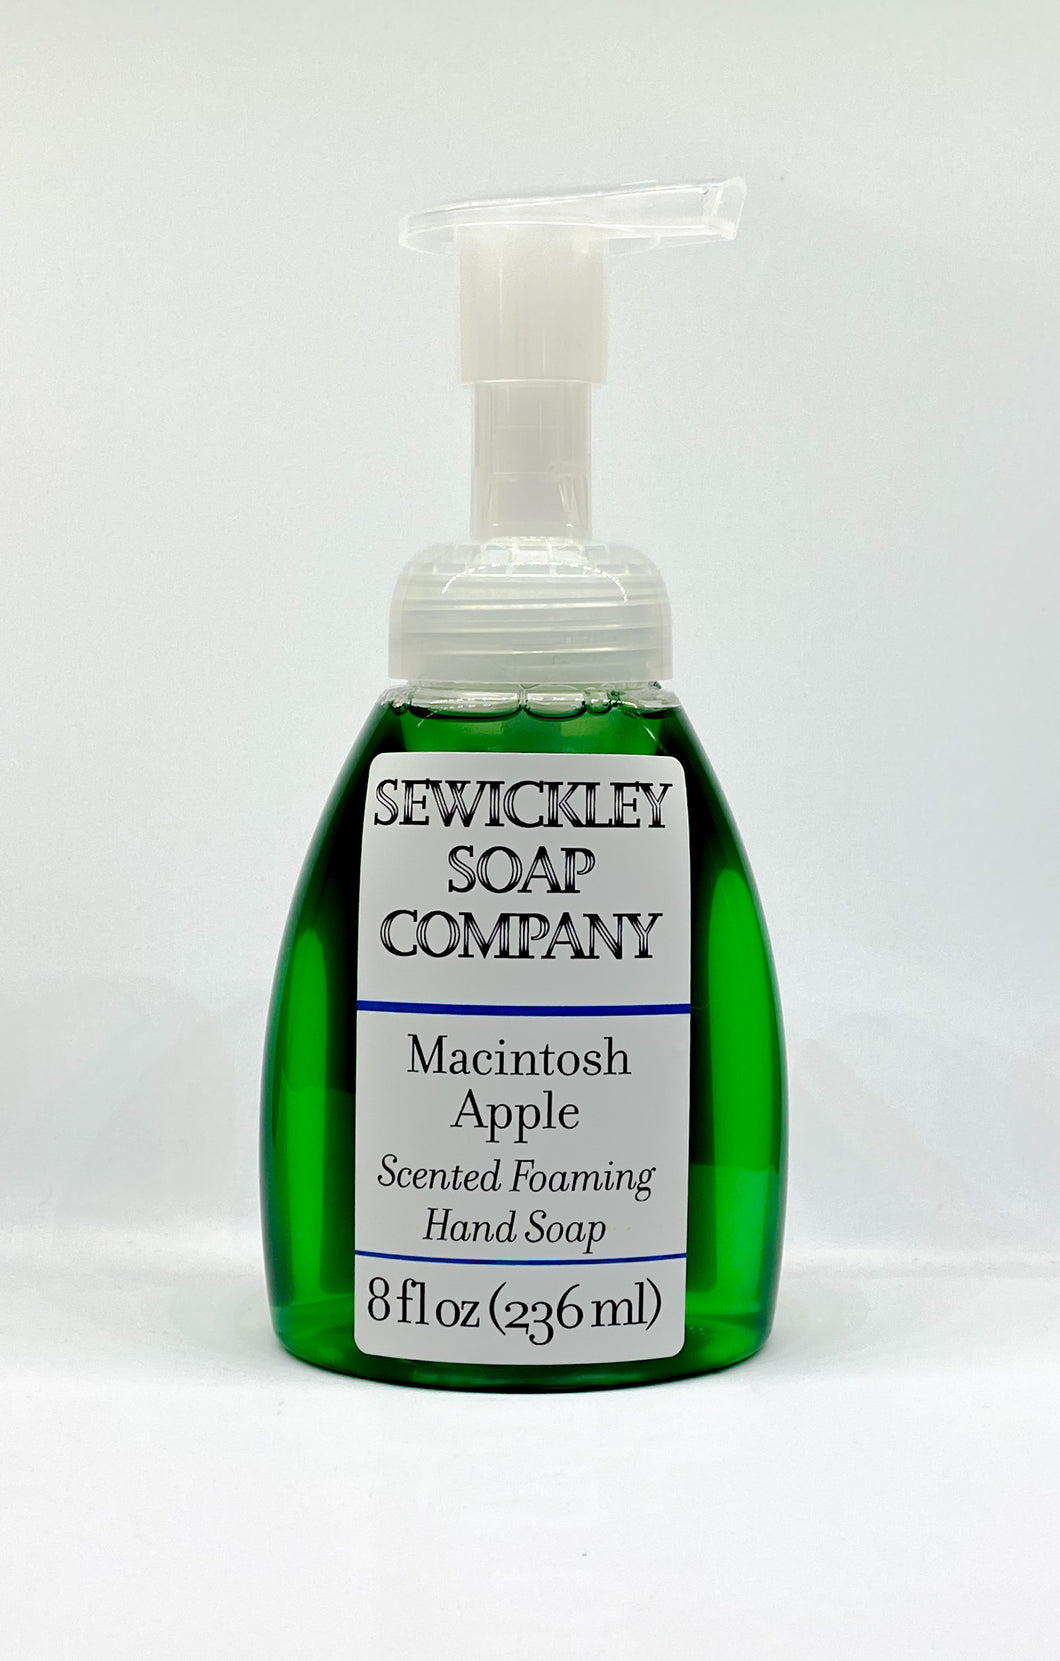 Macintosh Apple Scented Foaming Hand Soap